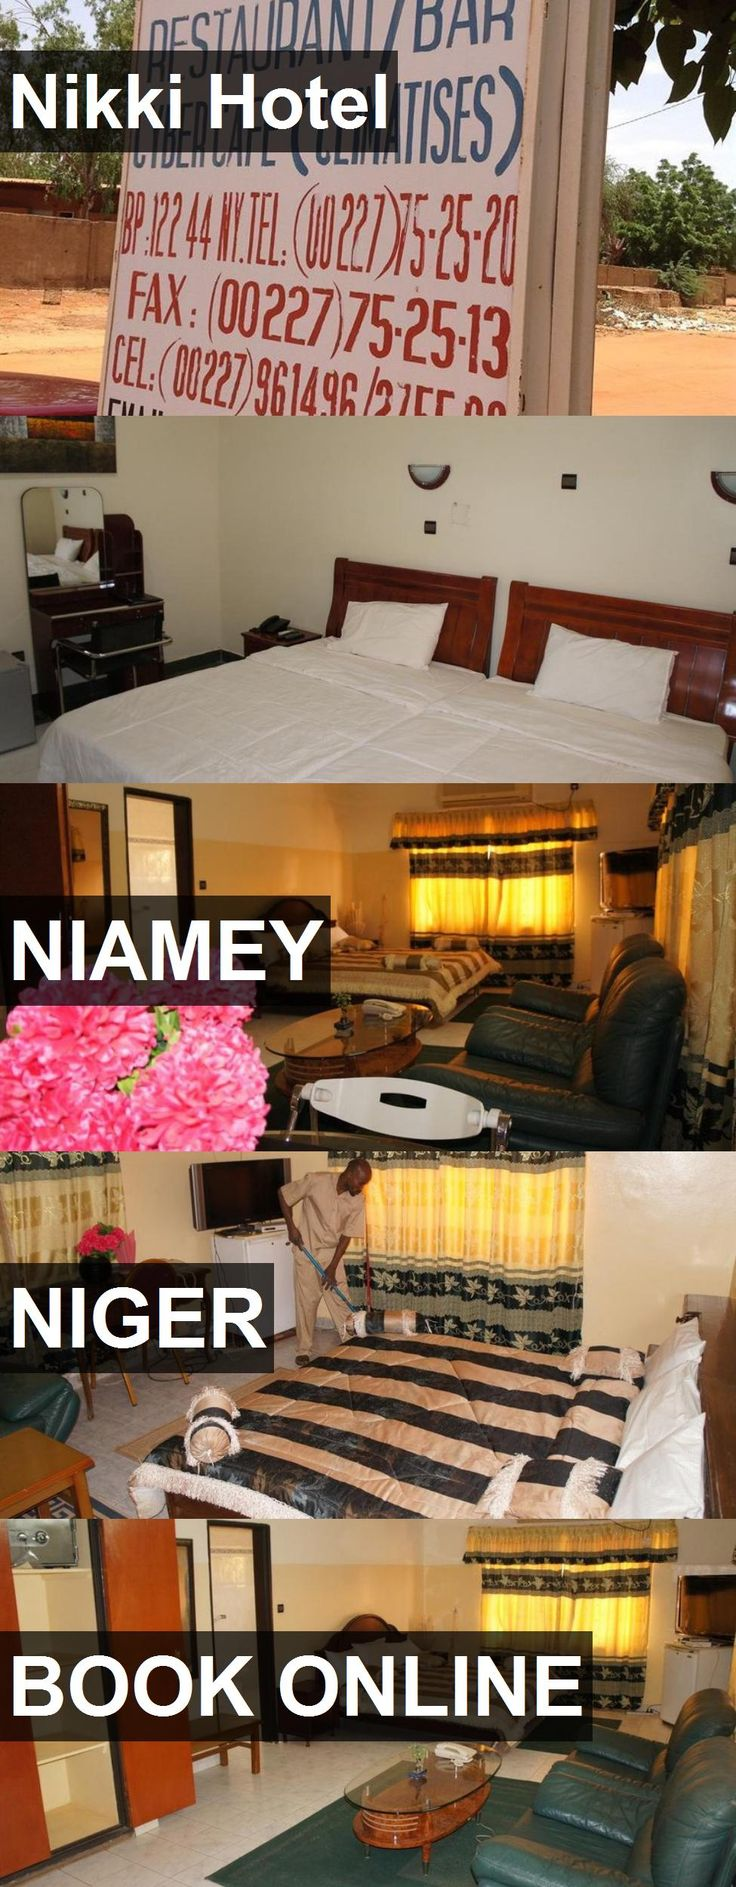 Nikki Hotel in Niamey, Niger. For more information, photos, reviews and best prices please follow the link. #Niger #Niamey #travel #vacation #hotel